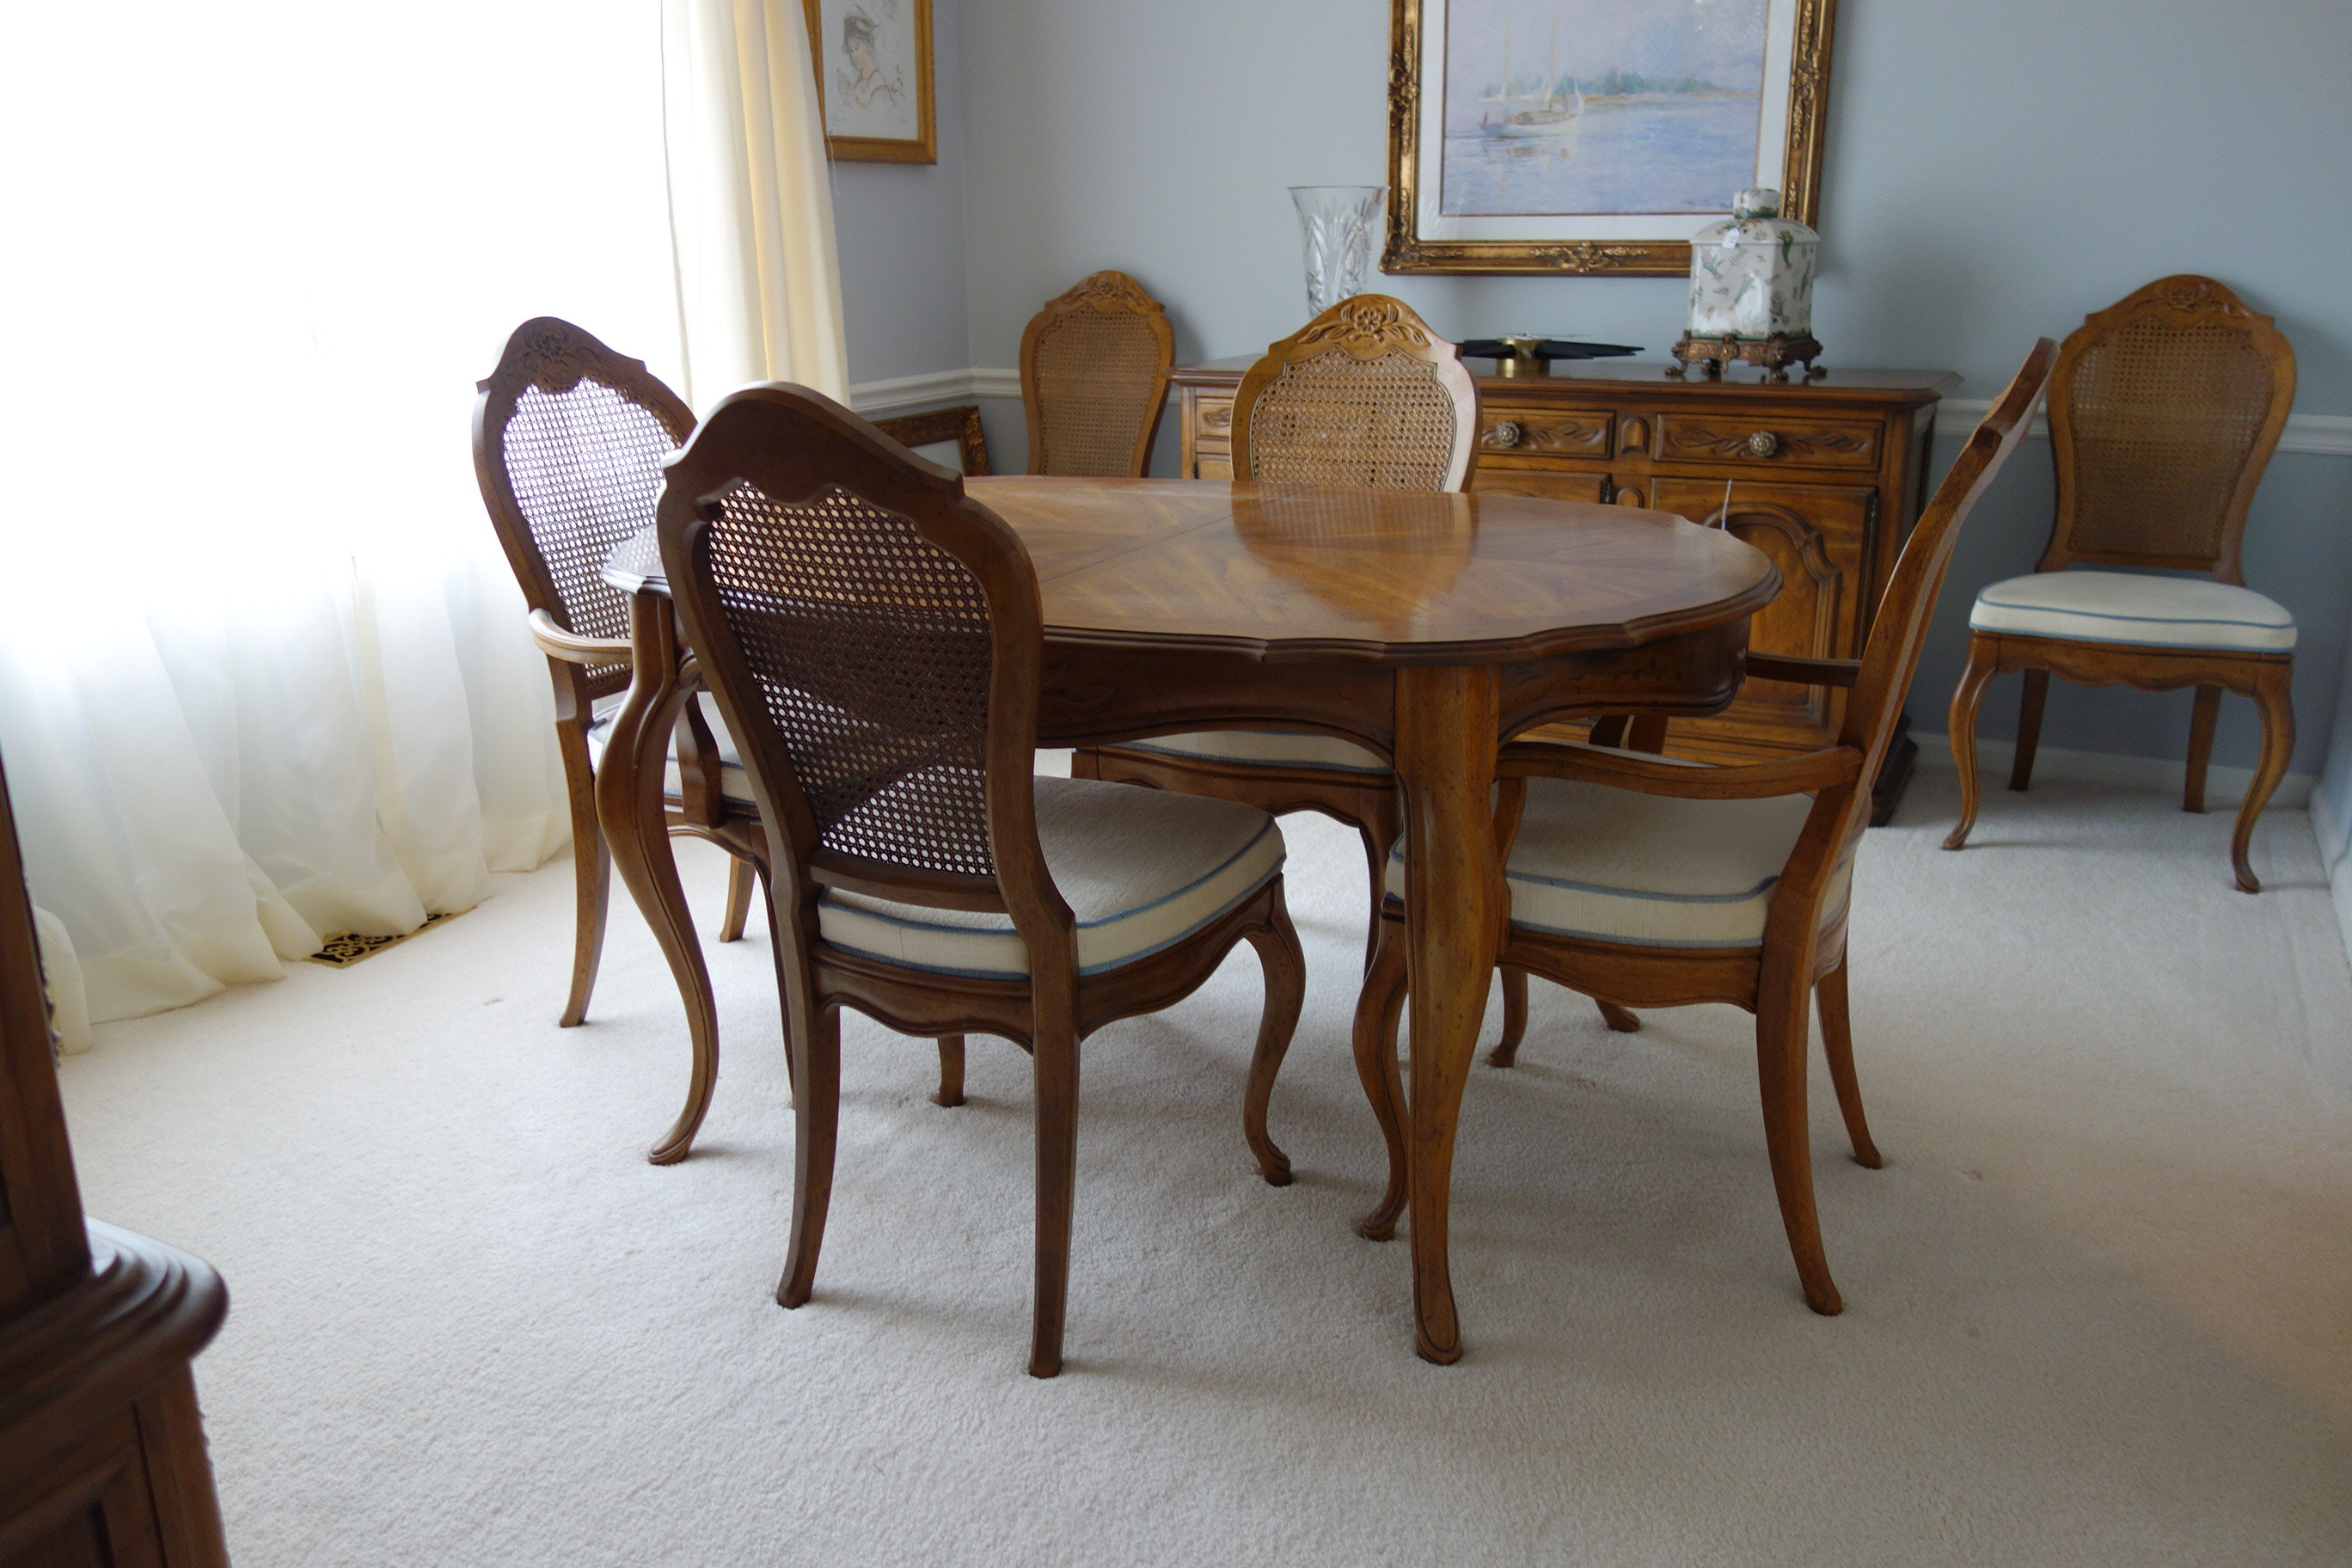 Drexel French Provincial Style Dining Table And Six Chairs ... Part 68